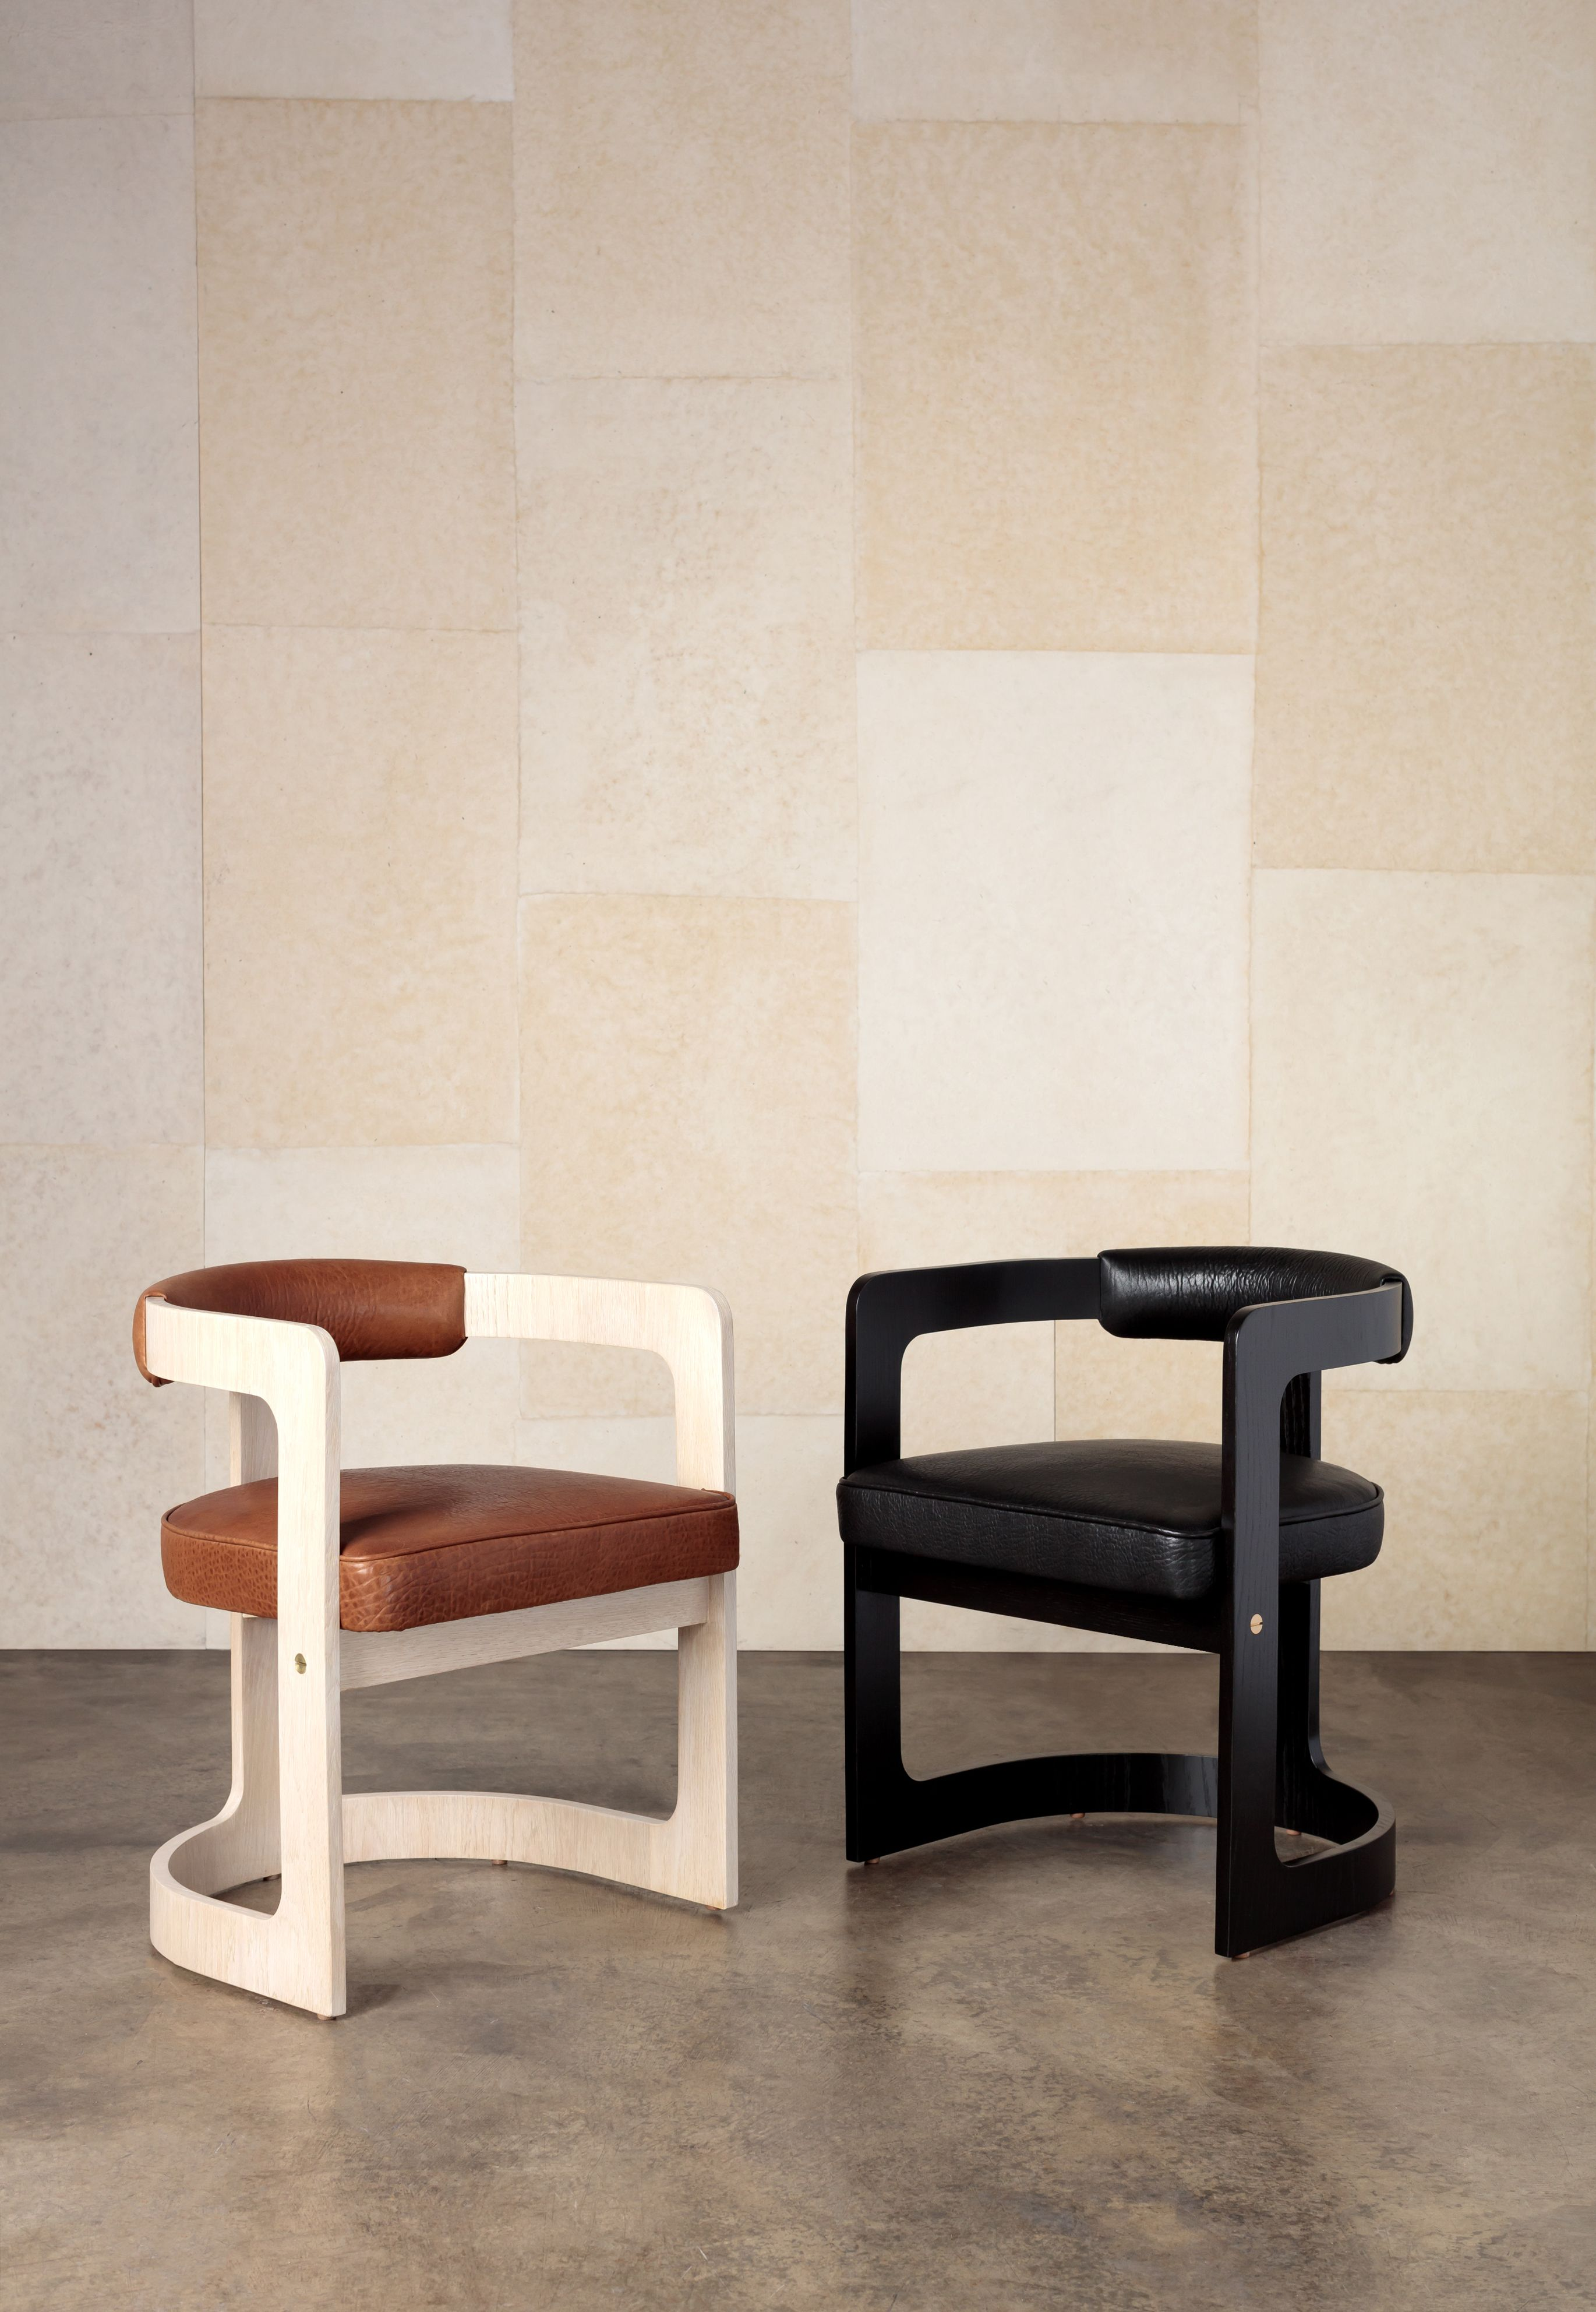 Zuma Dining Chair by Kelly Wearstler  Dining chairs, Contemporary